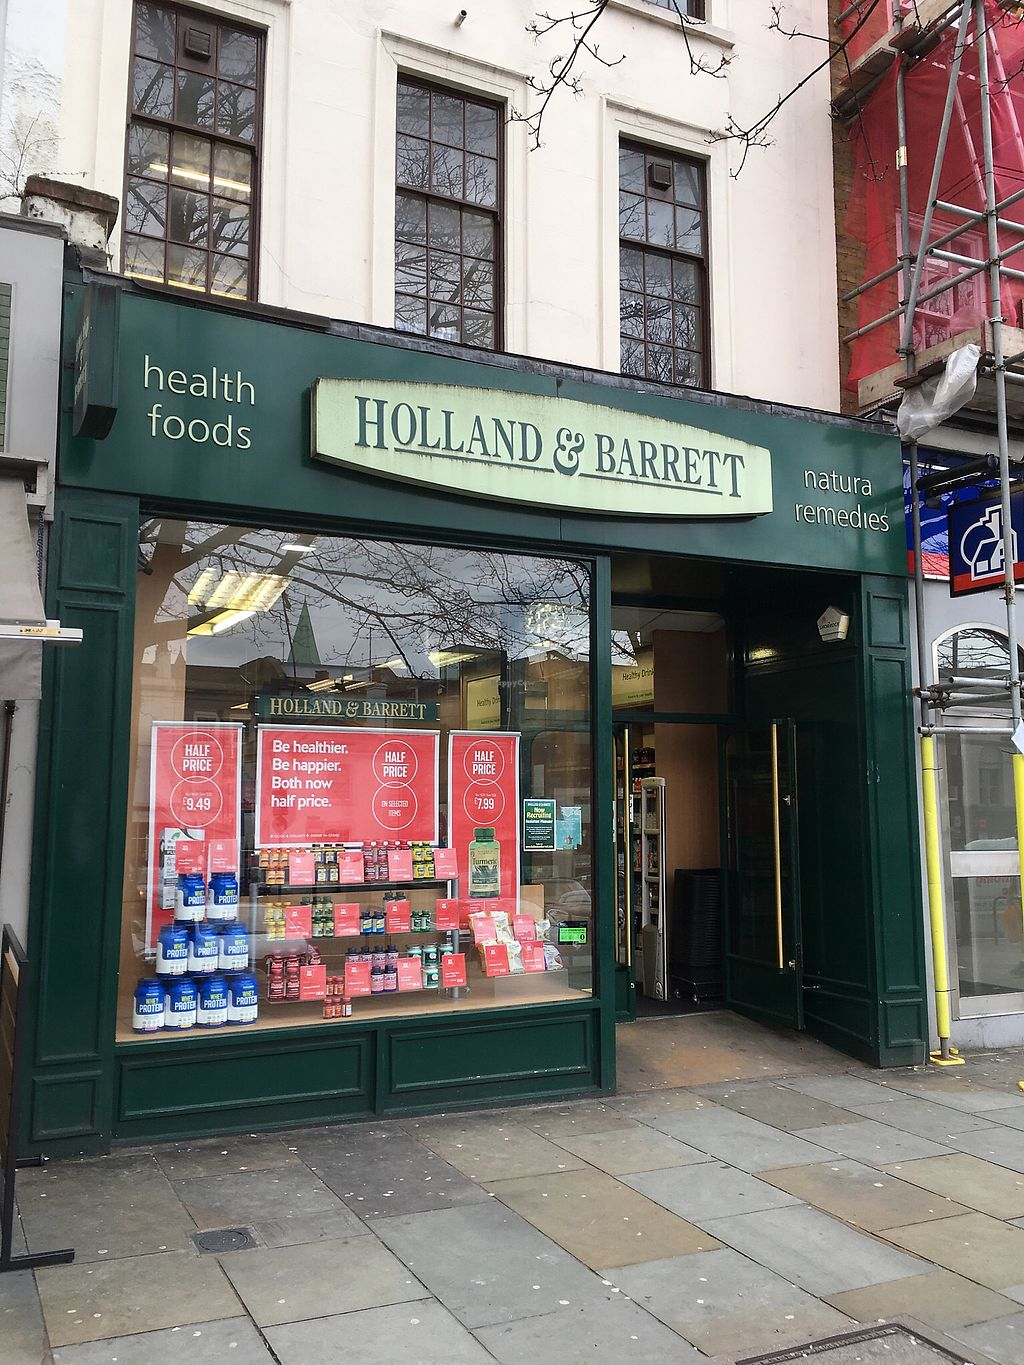 """Photo of Holland & Barrett - 31 Upper St  by <a href=""""/members/profile/hack_man"""">hack_man</a> <br/>Exterior  <br/> April 2, 2018  - <a href='/contact/abuse/image/116455/379624'>Report</a>"""